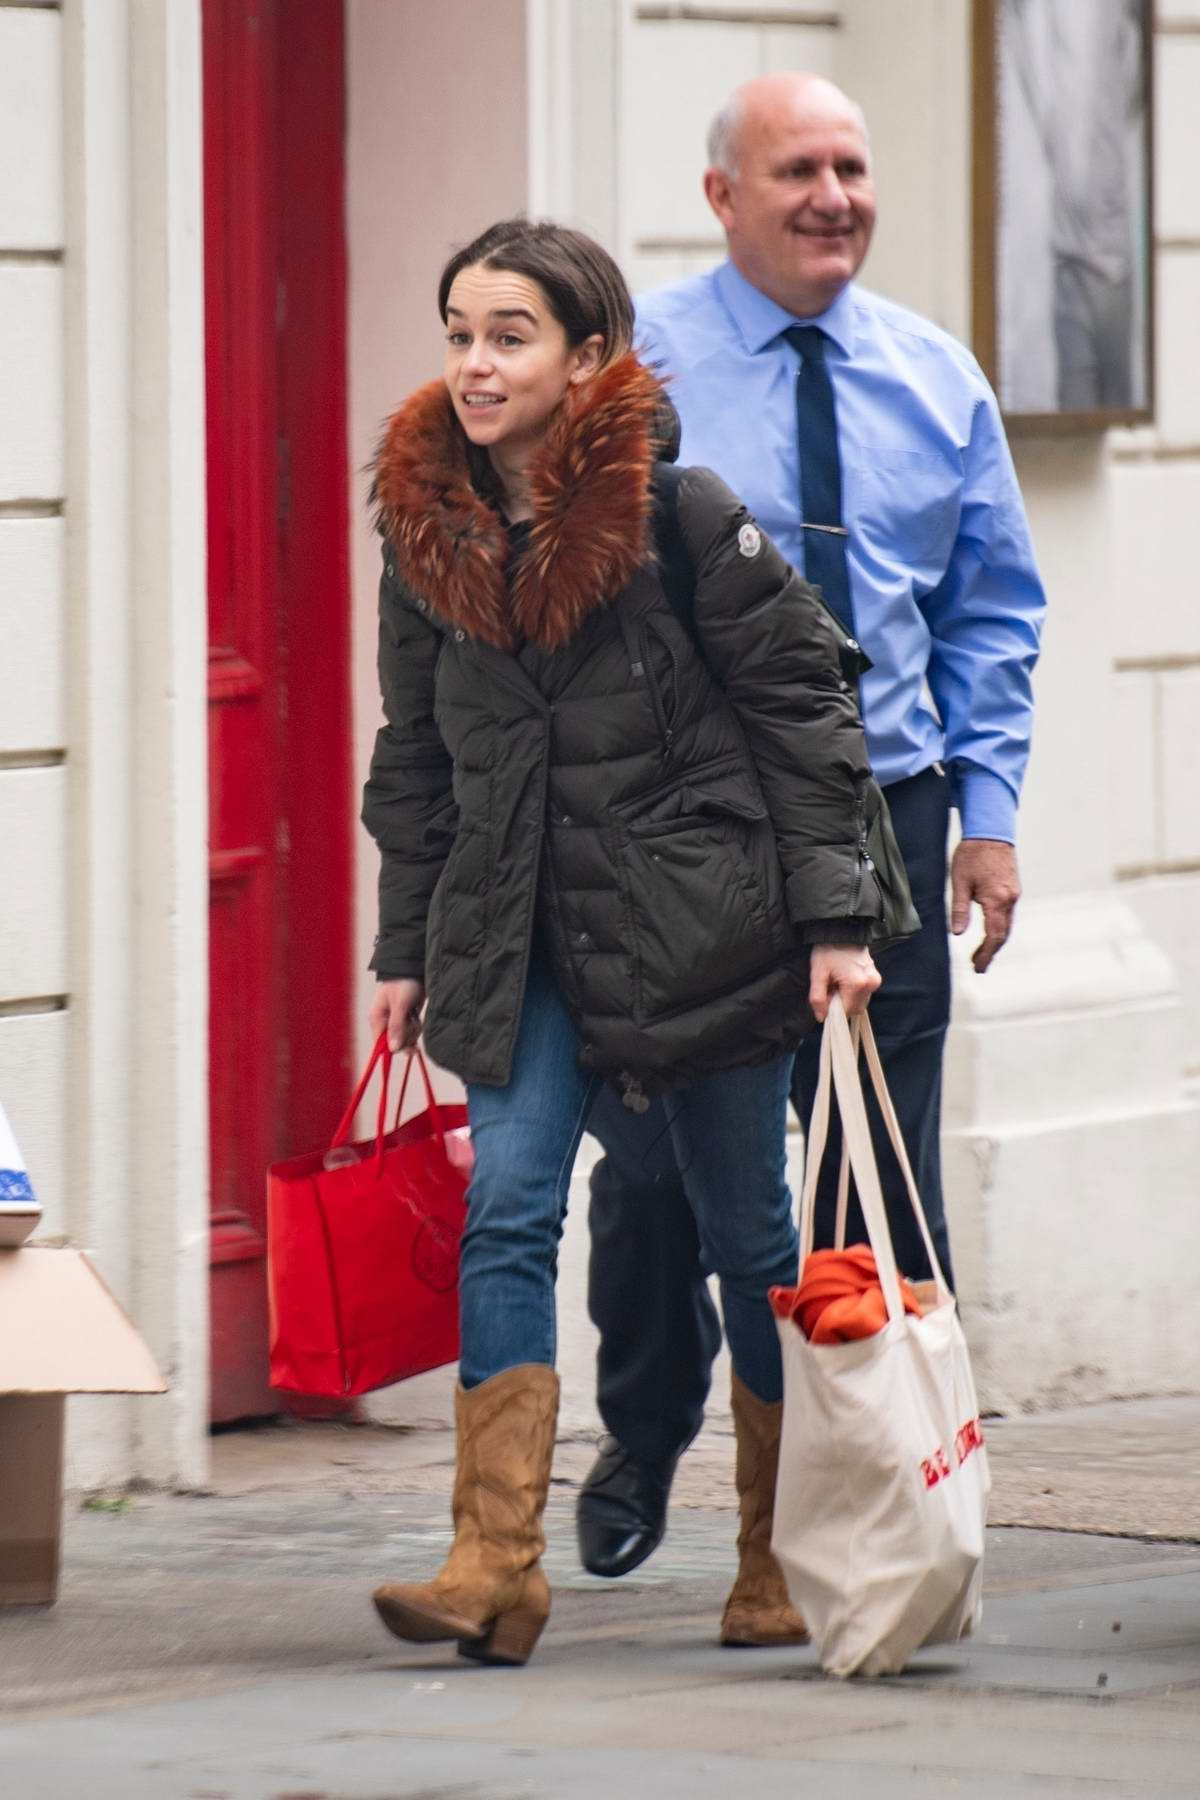 Emilia Clarke bundles up in a fur-lined coat as she steps out in London, UK